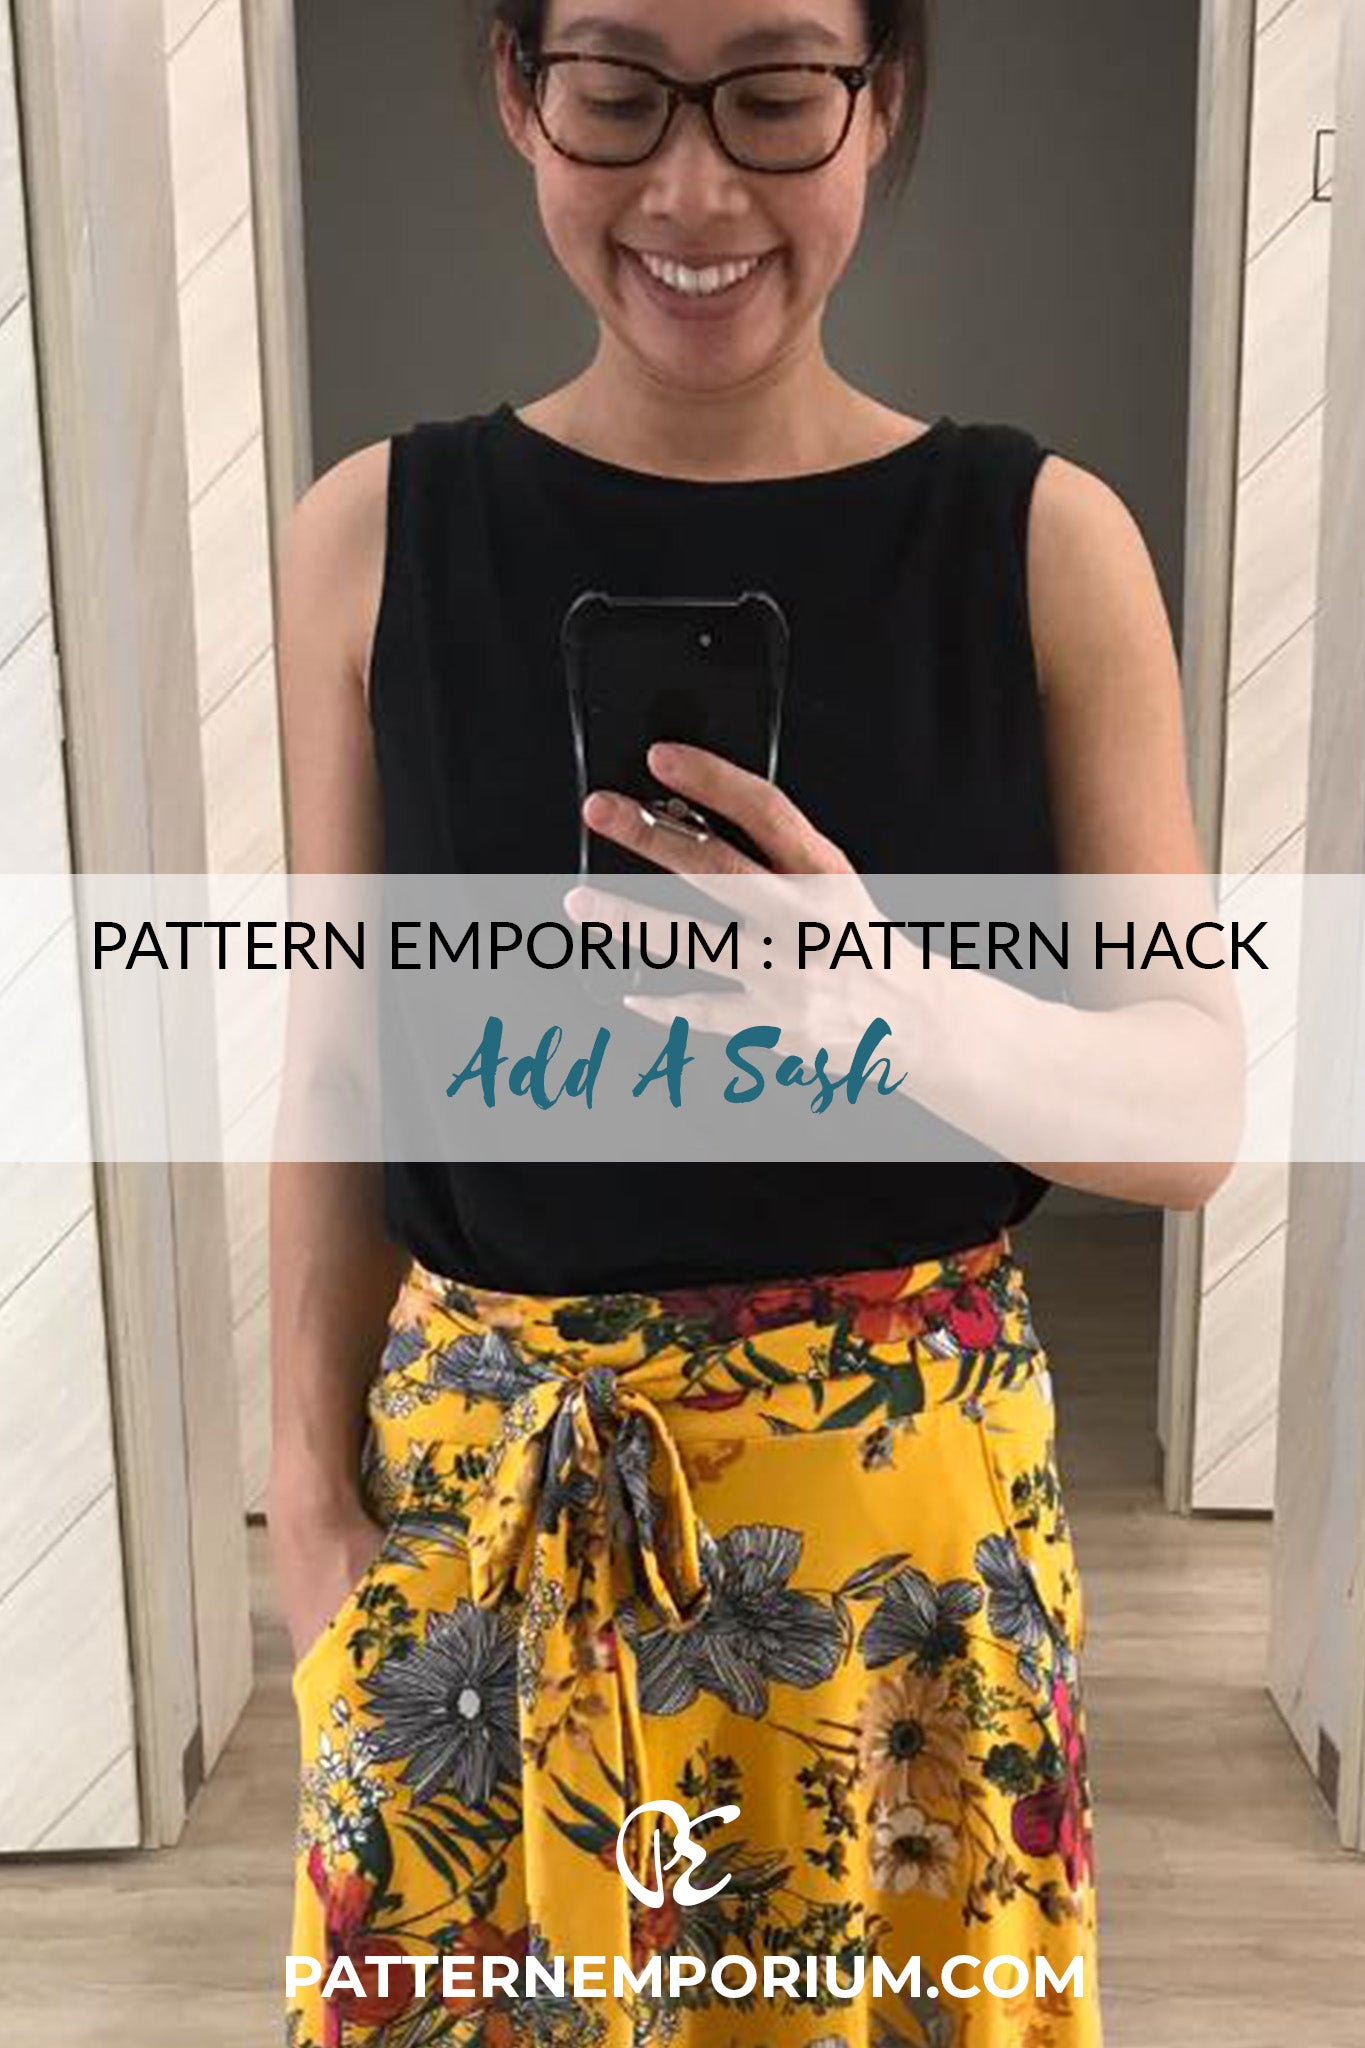 Pattern Hack: Add a Waist Sash